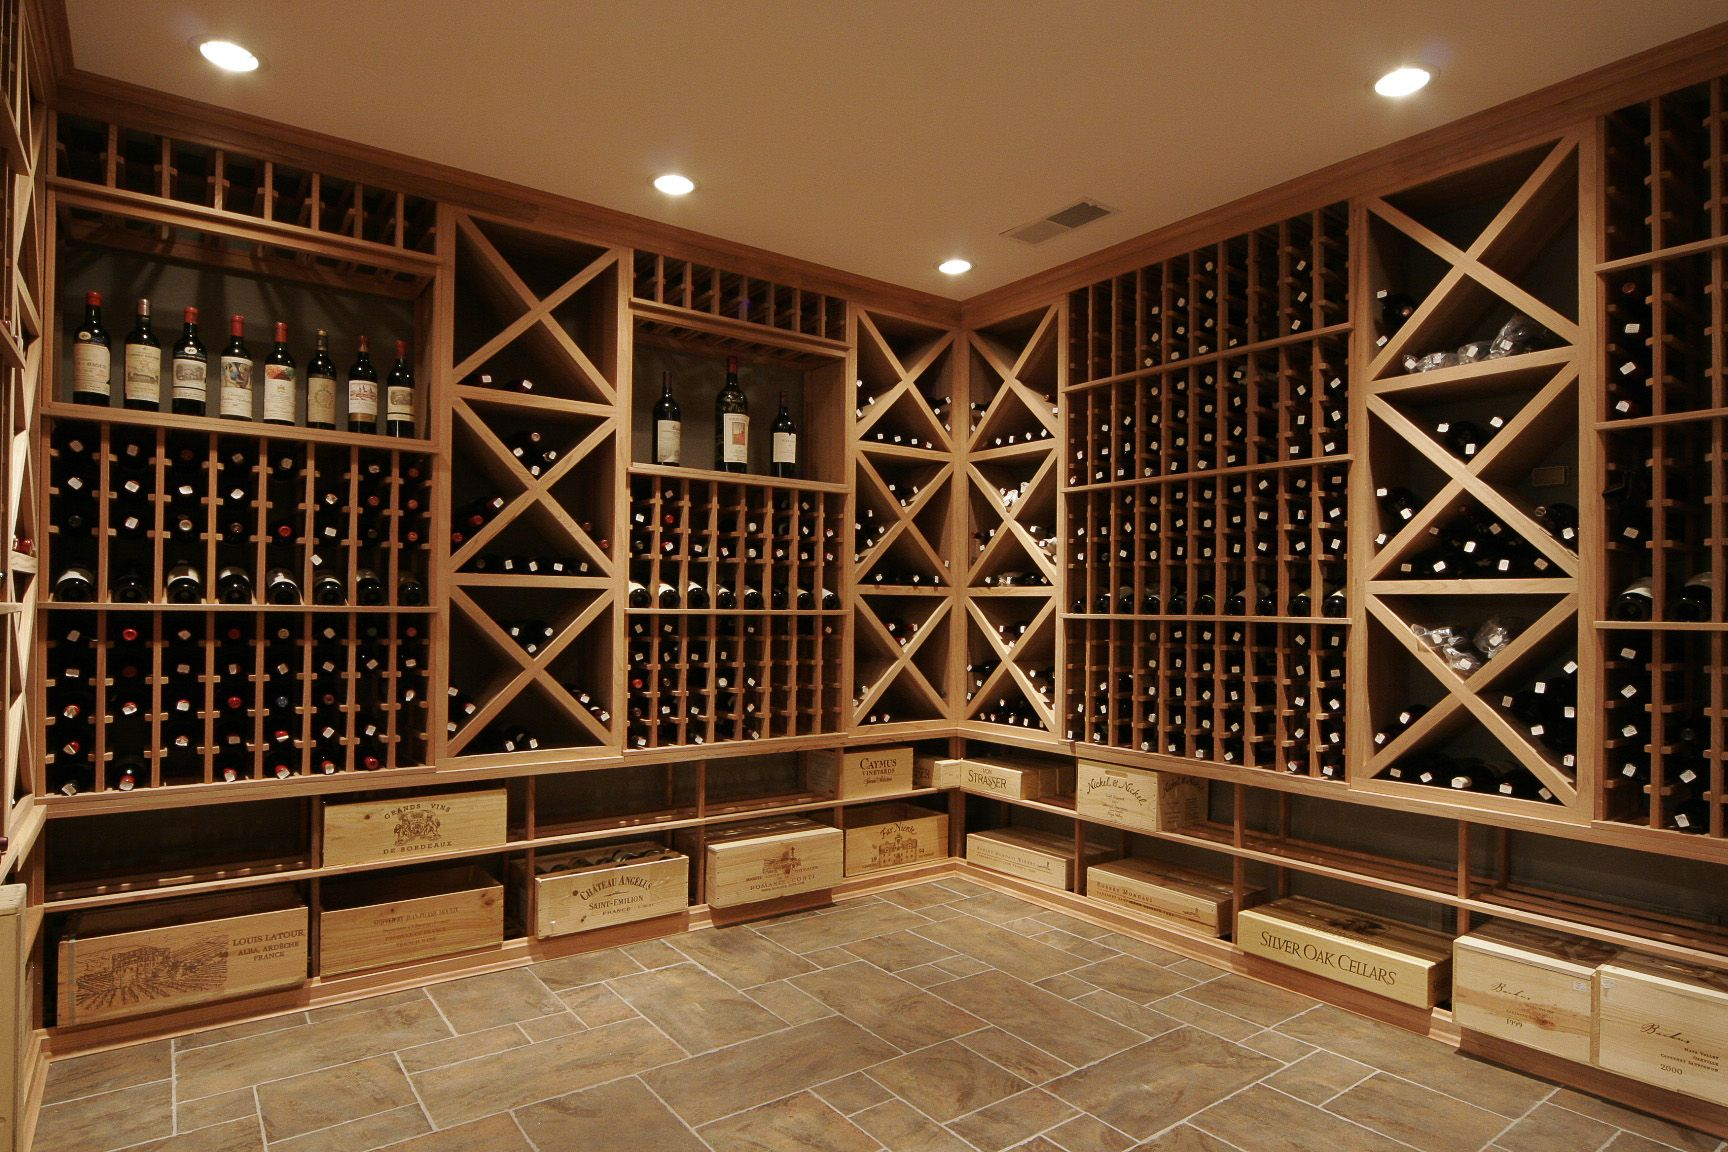 17 best images about wine cellars on pinterest cable wine cellar design and wine cellar